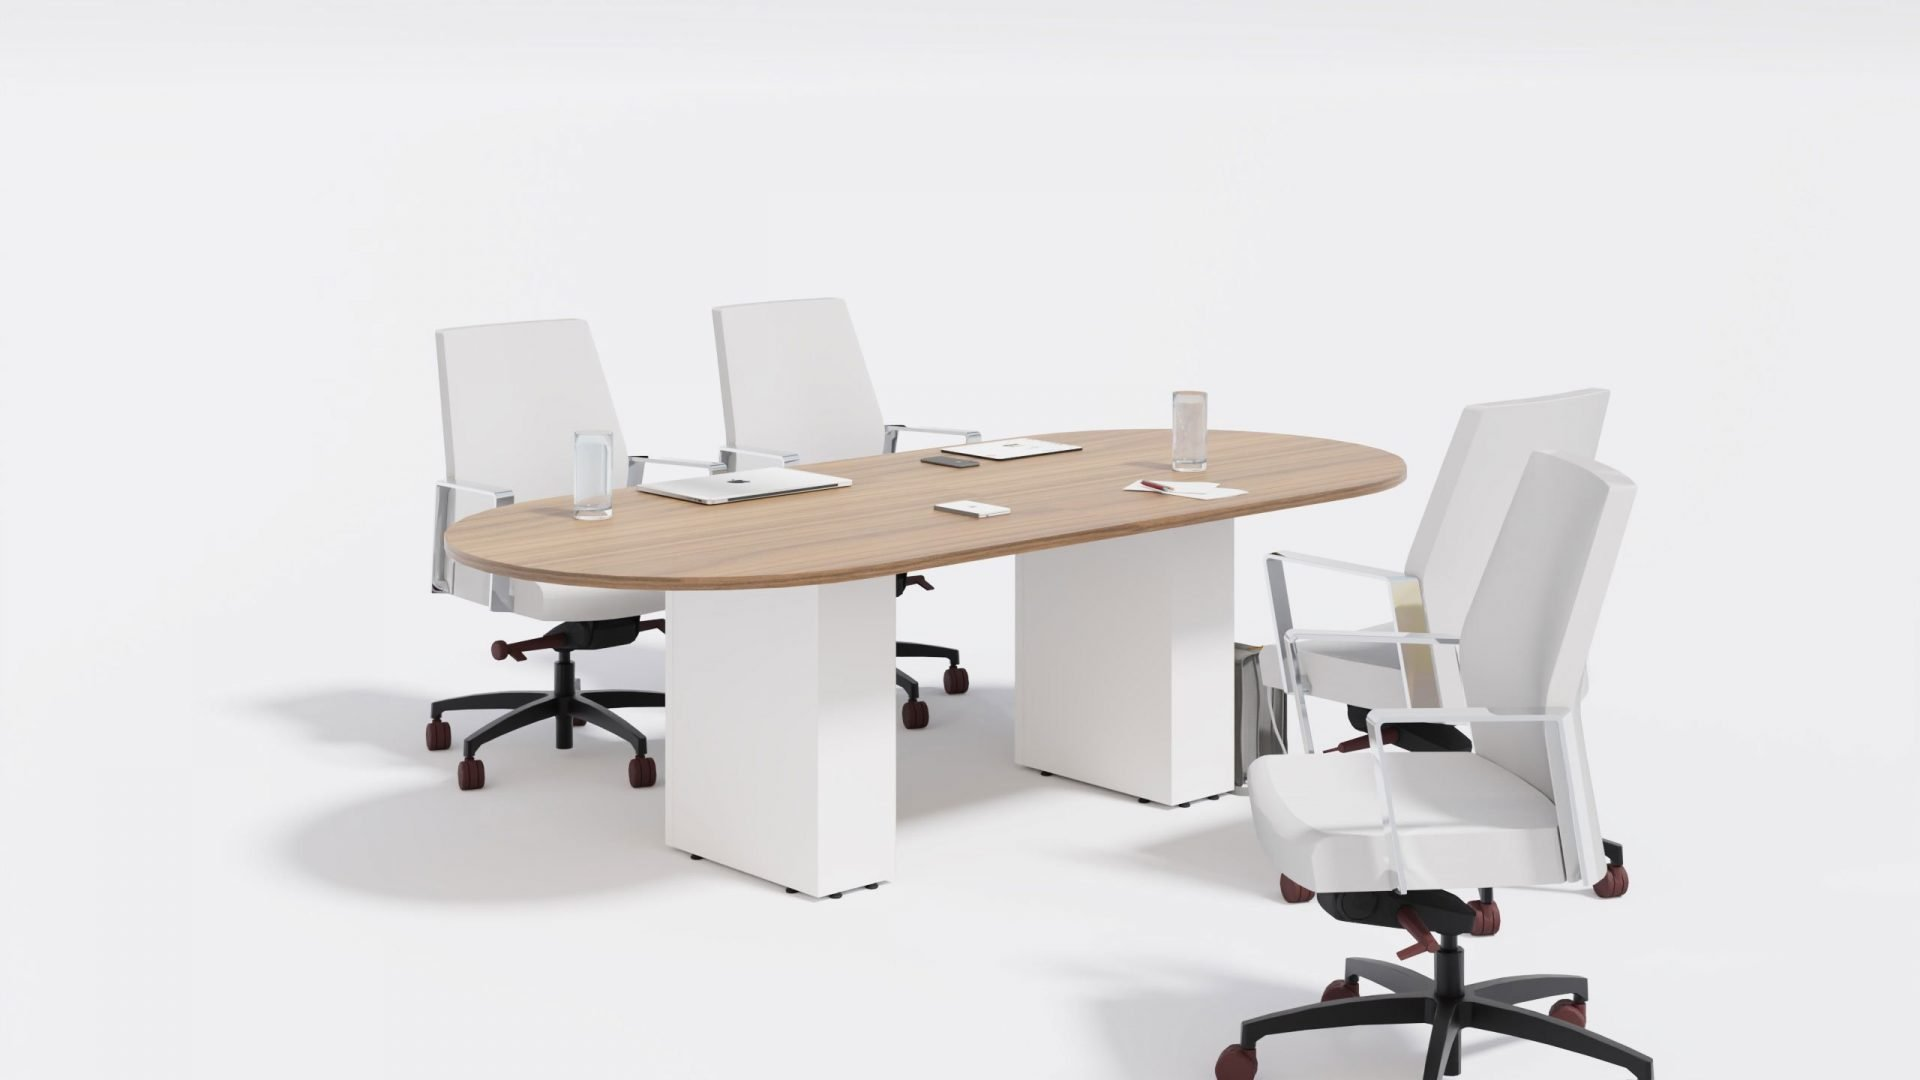 Racetrack Boardroom Table 1399 with work tools and chairs